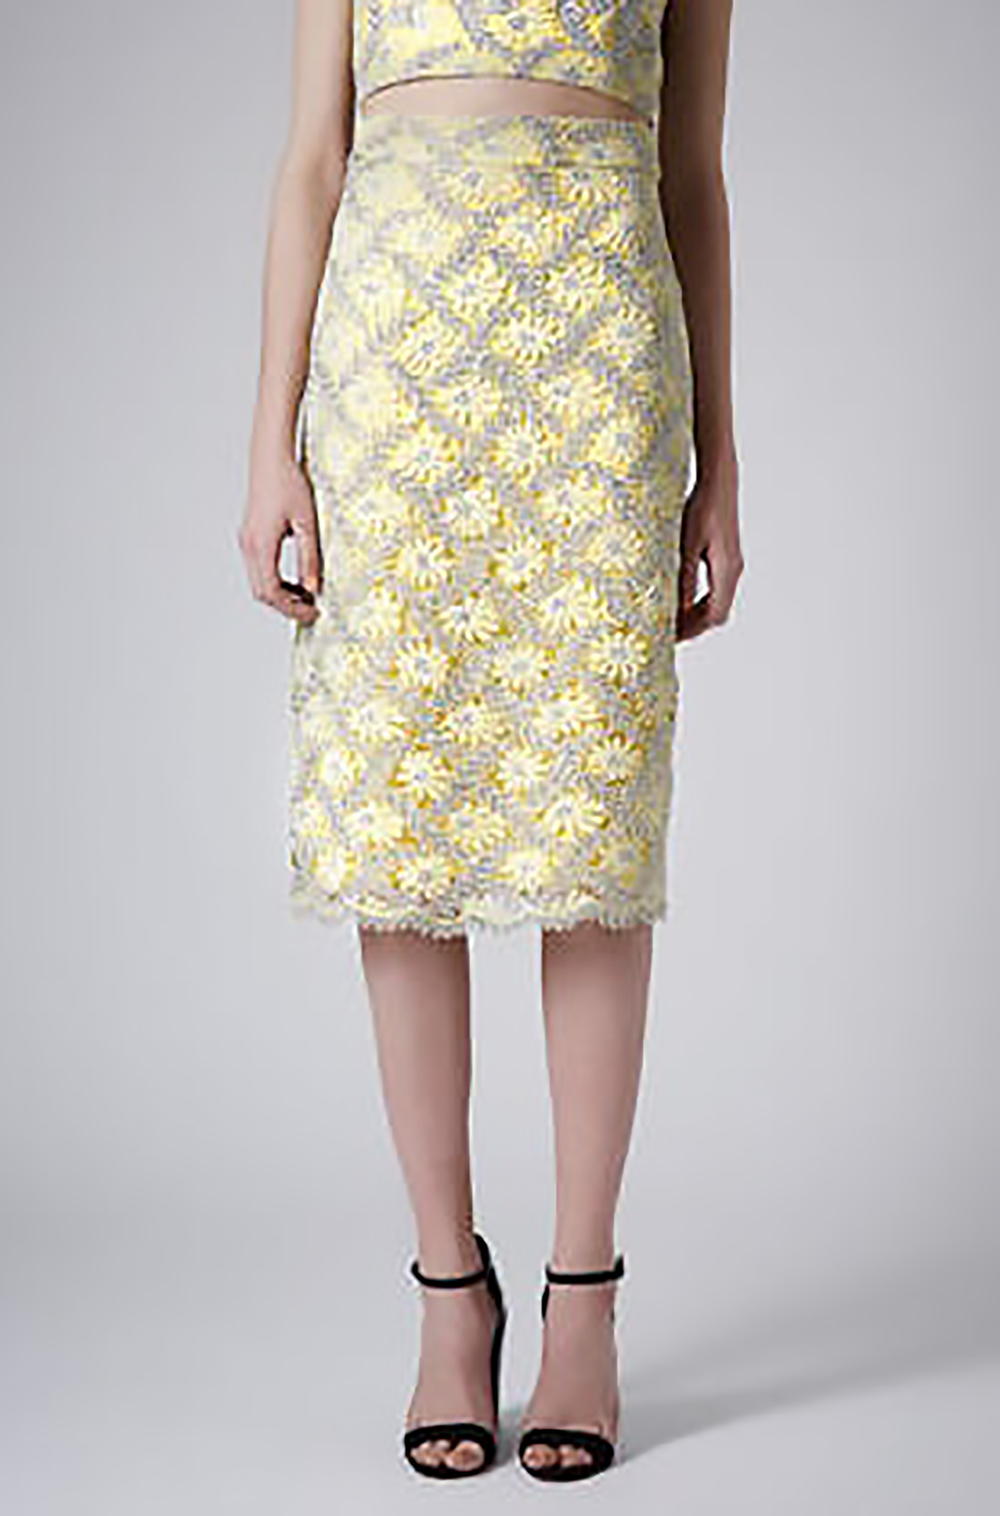 topshop limited edition metallic lace pencil skirt slips 1500.jpg